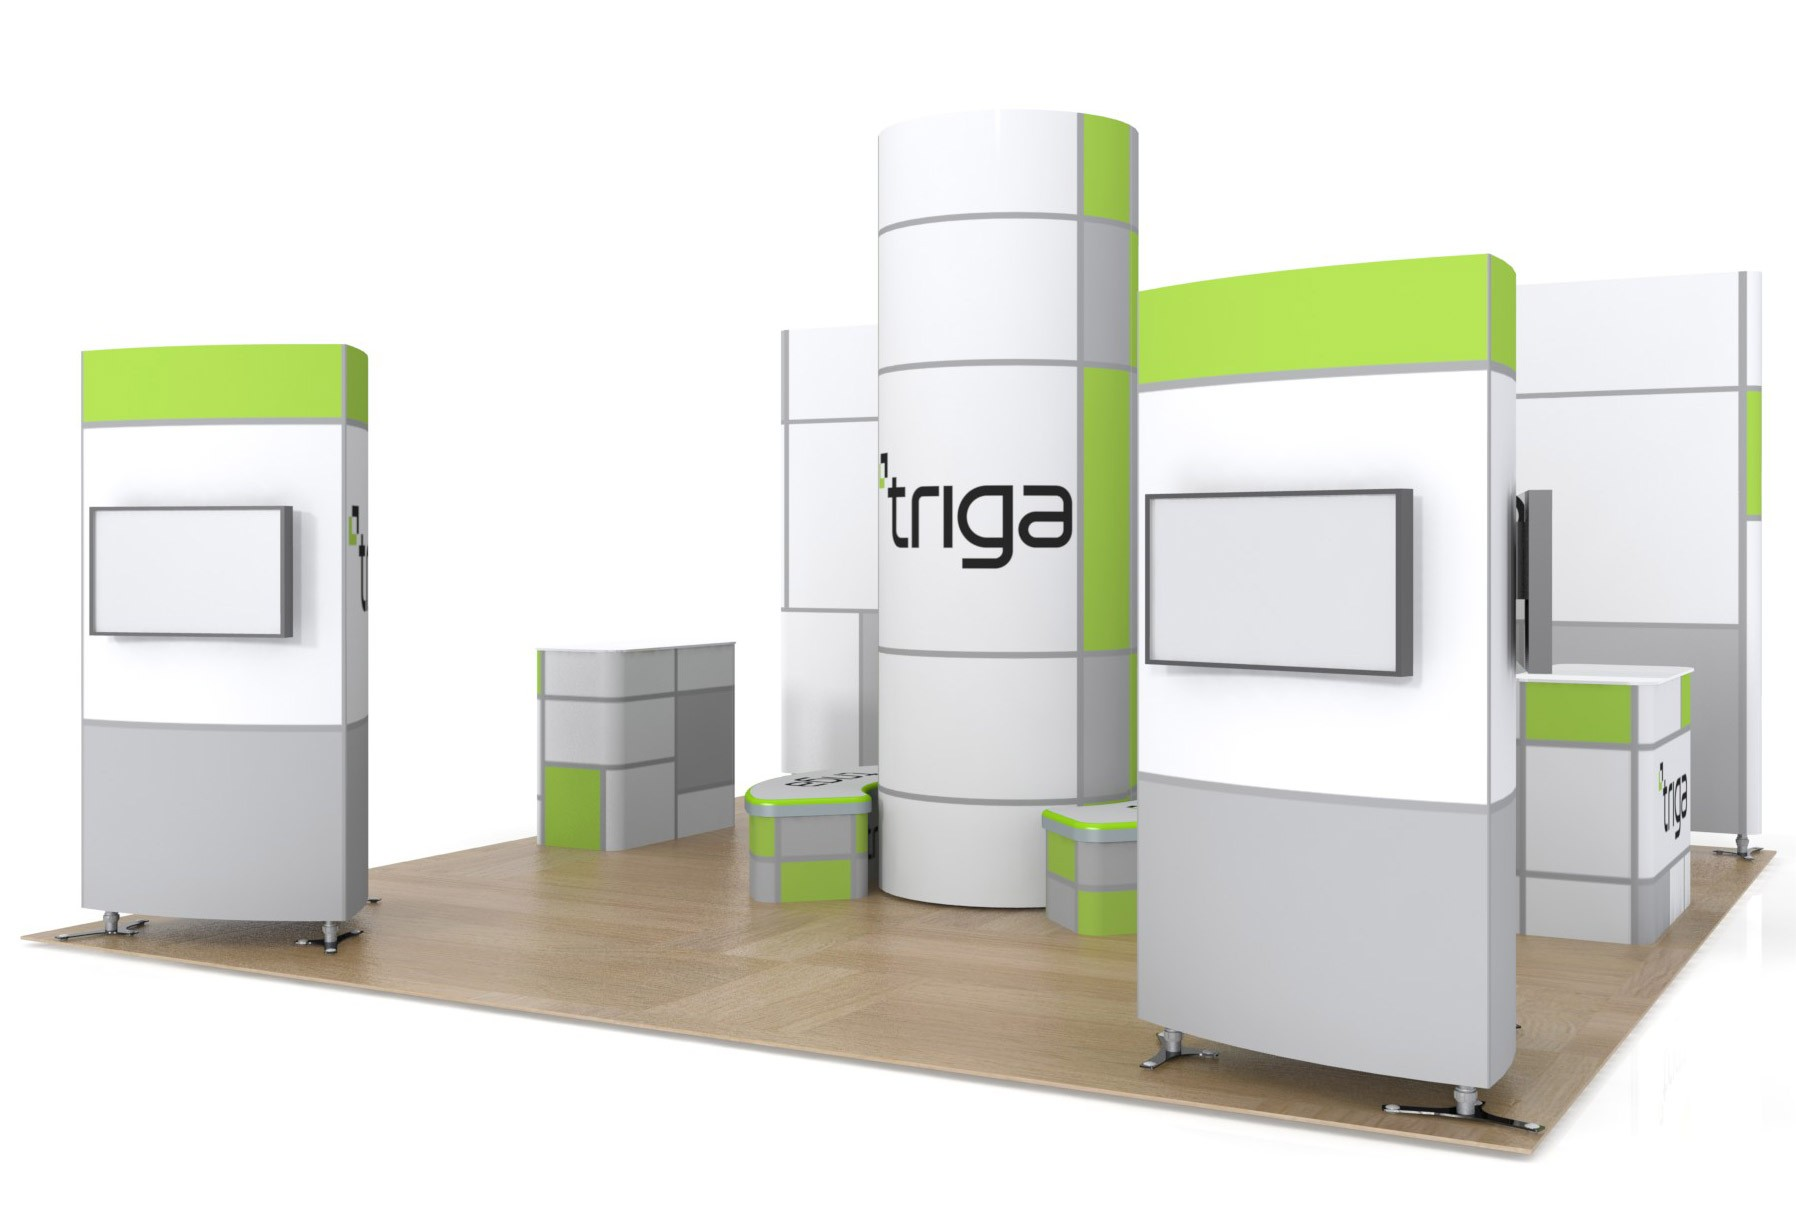 Triga 20x20 Trade Show Booth Package A